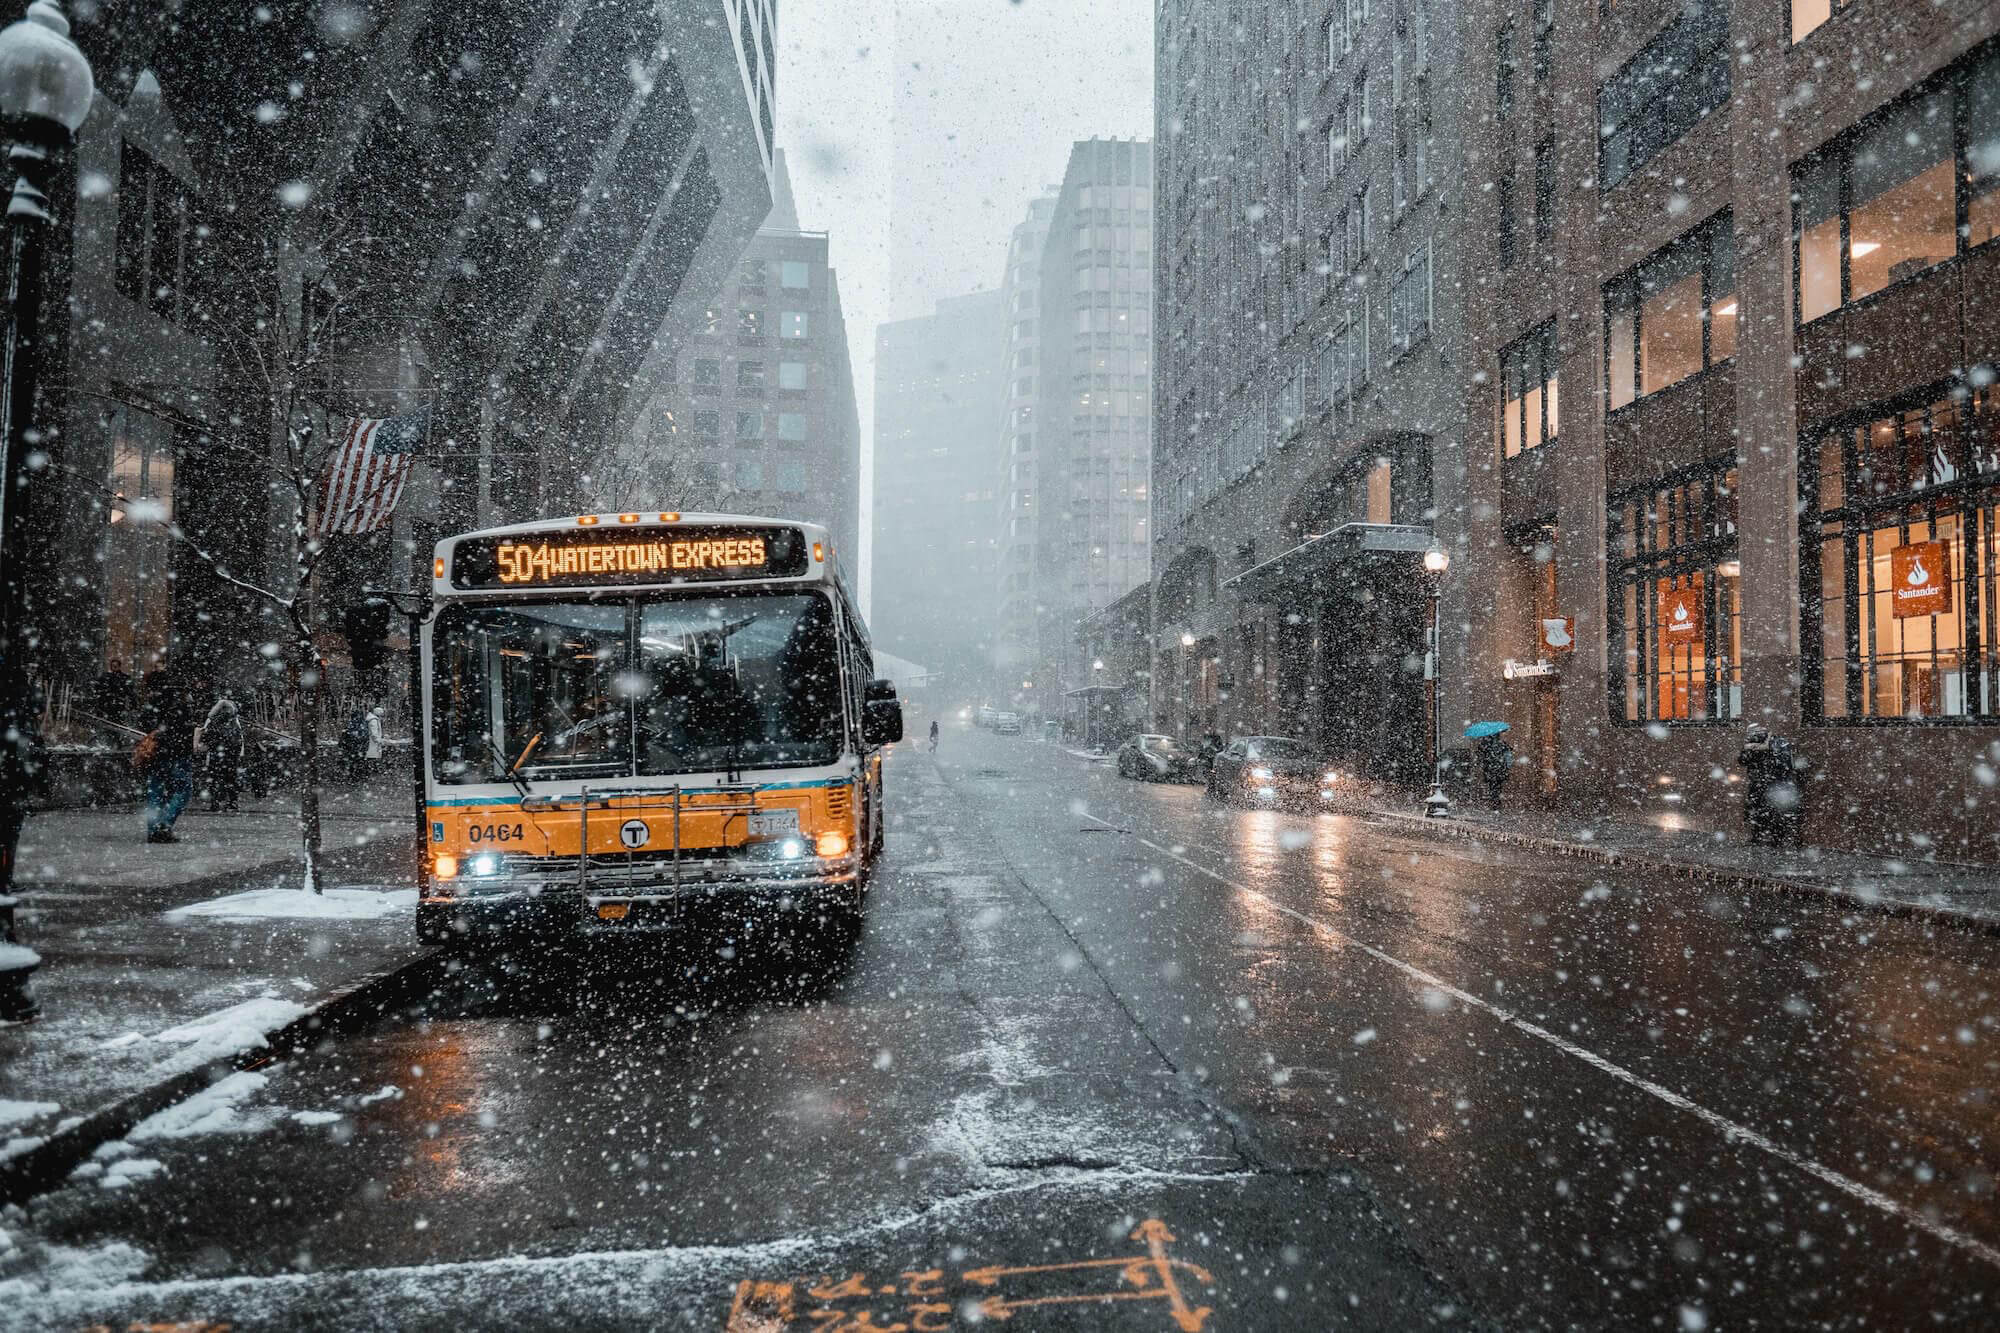 a bus in a snowing city